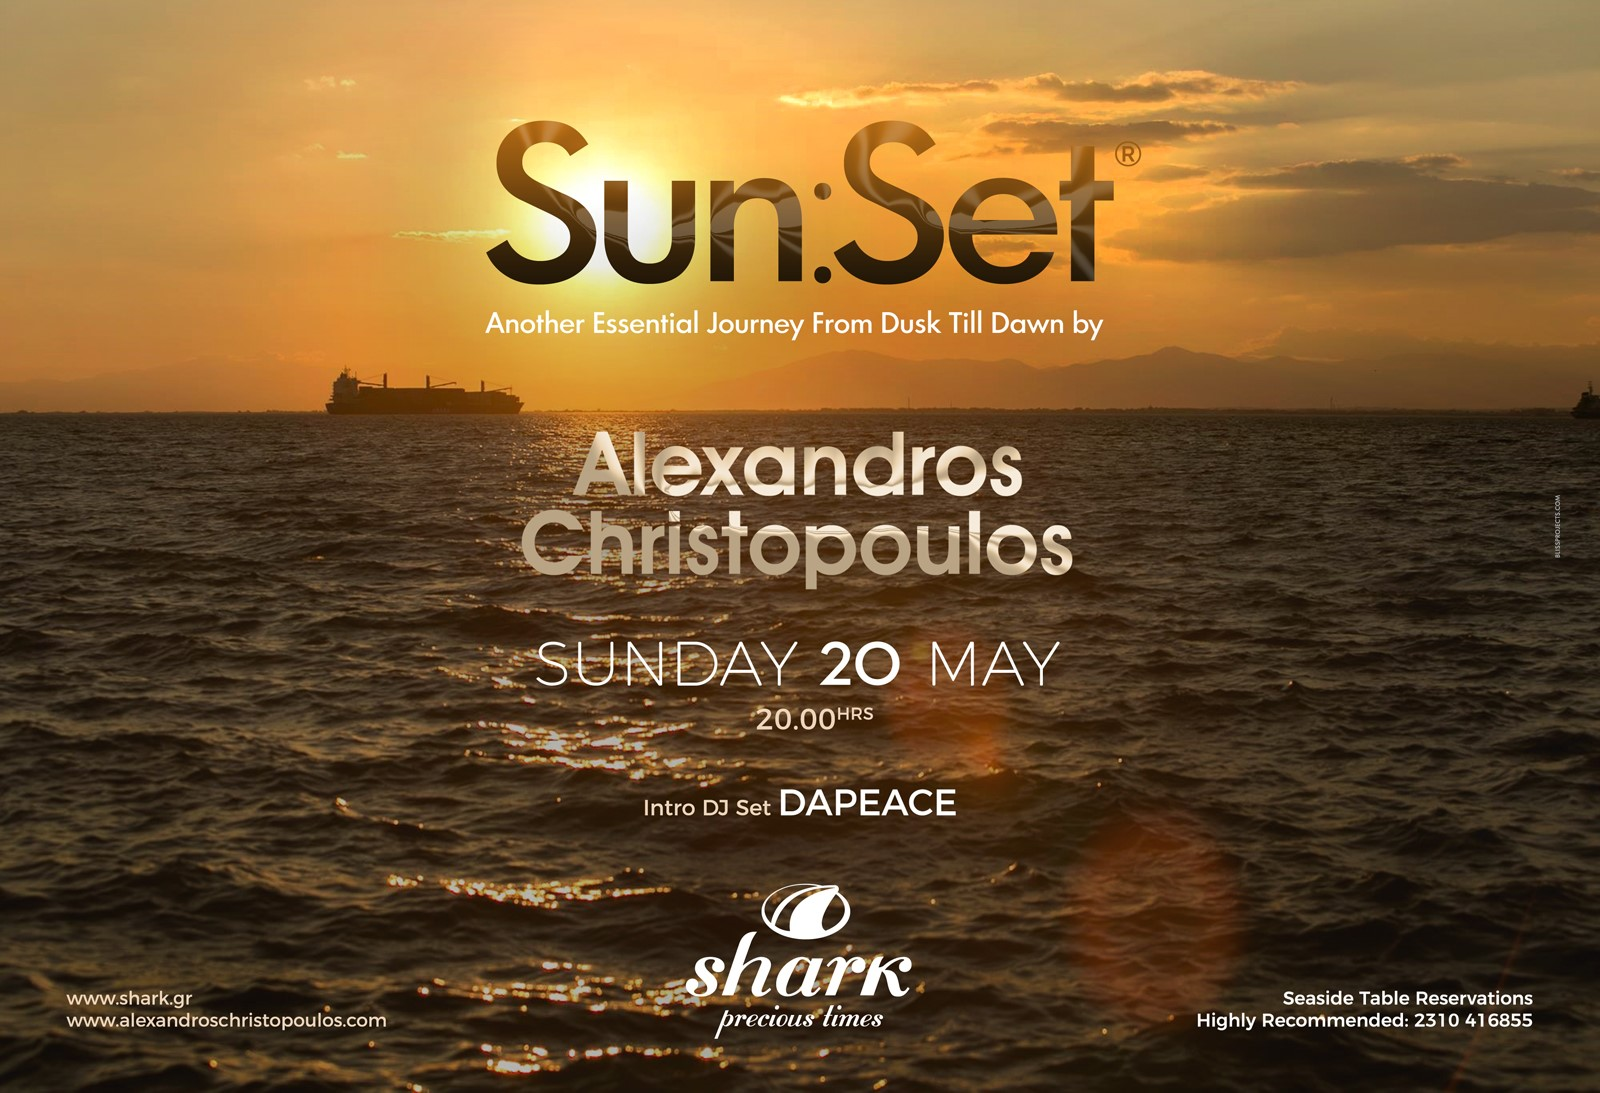 ★ Sun:Set ★ SHARK Thessaloniki